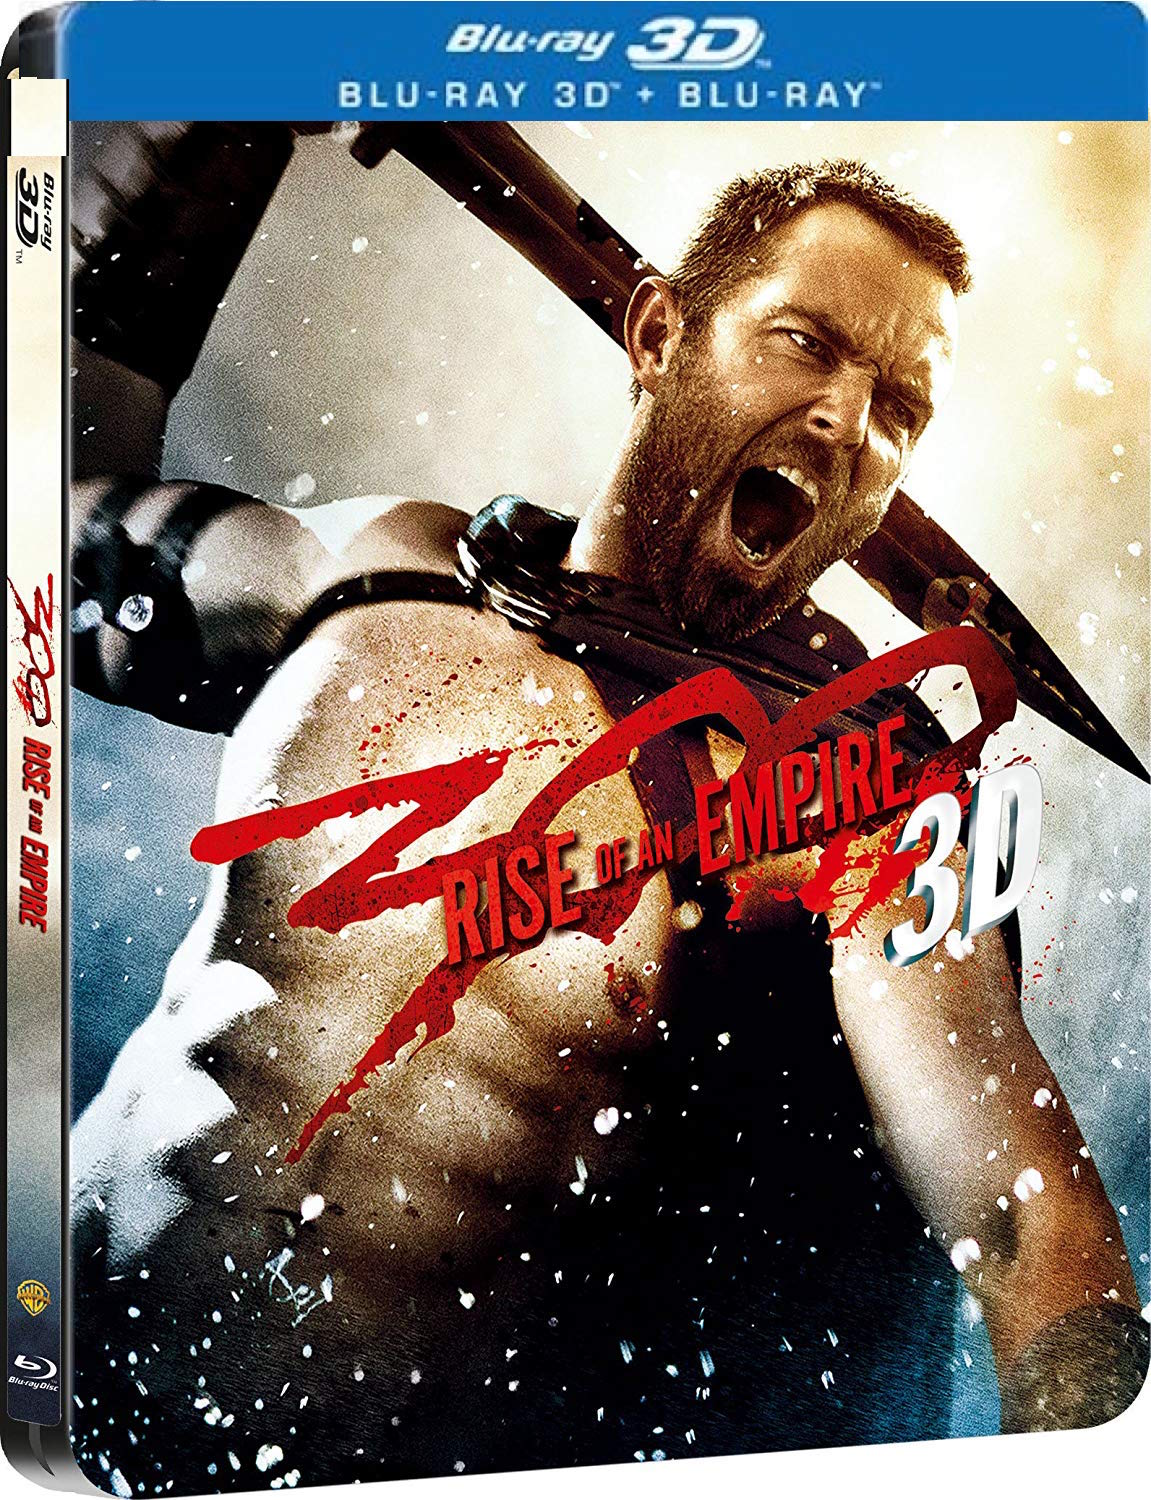 300: Rise of an Empire [3D + Blu-ray] [Steelbook]